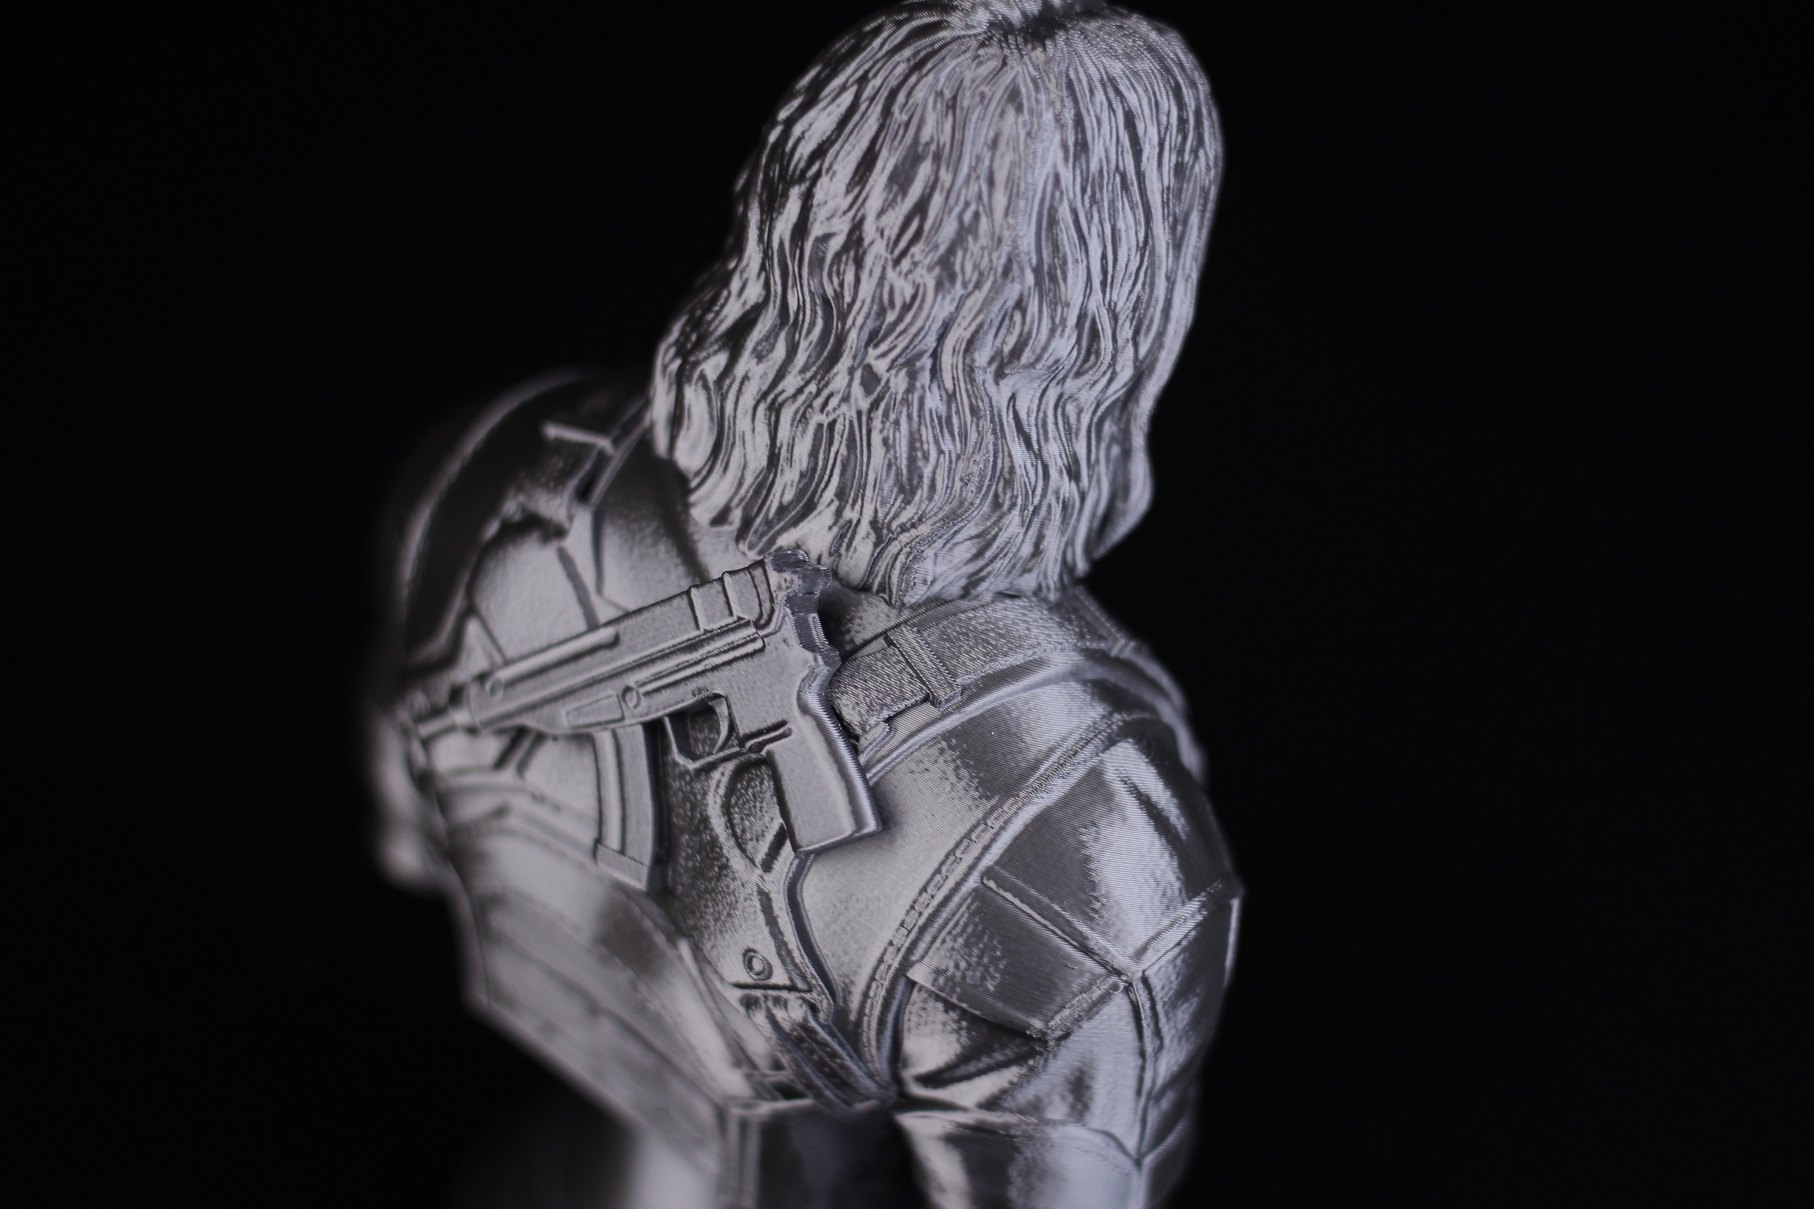 Masked-Winter-Soldier-from-Fotis-Mint-on-Creality-Sermoon-D1-3